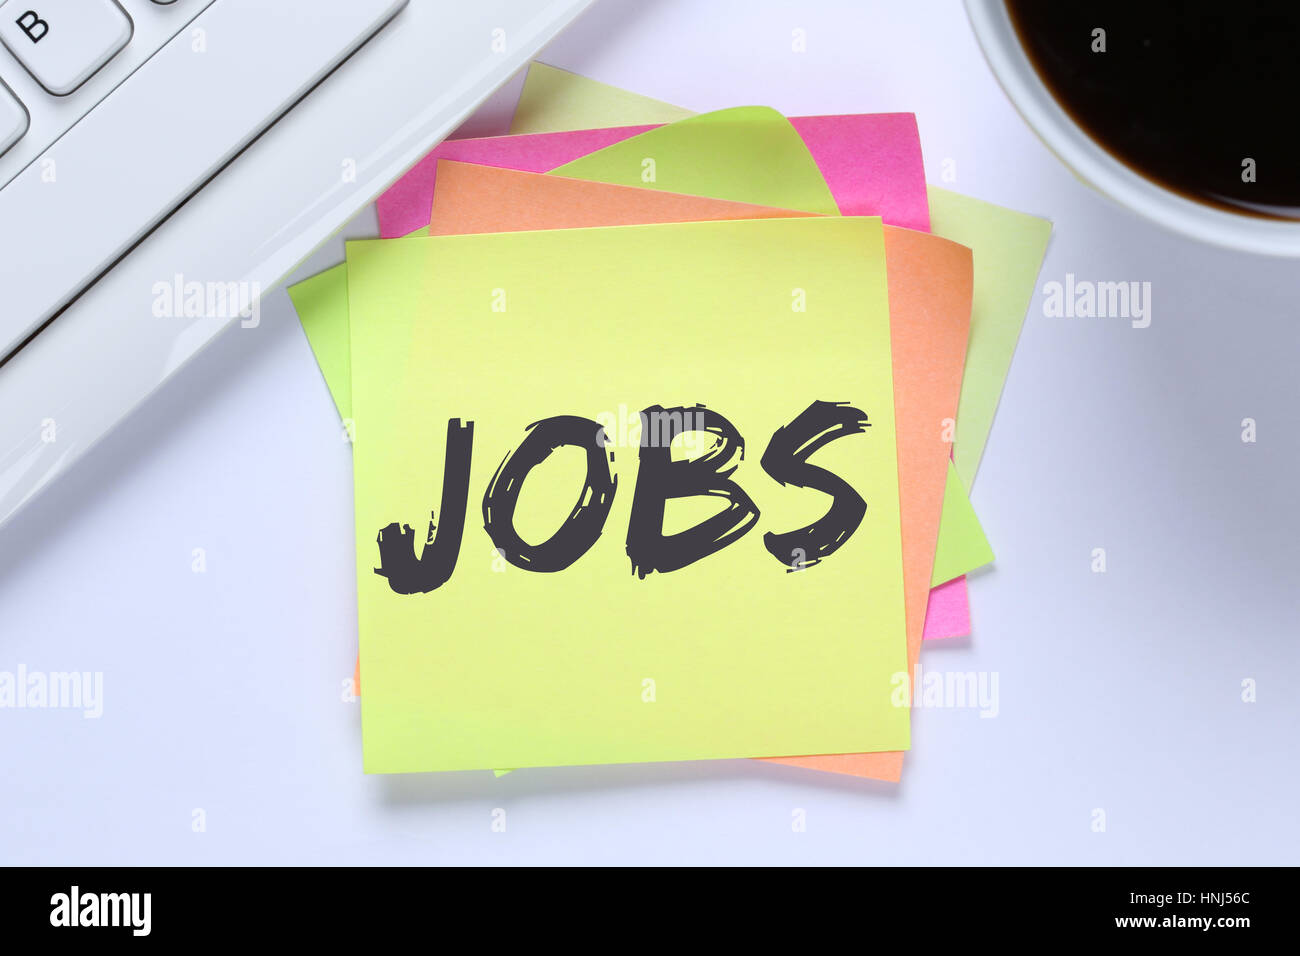 Jobs, job working recruitment employees office computer keyboard - Stock Image